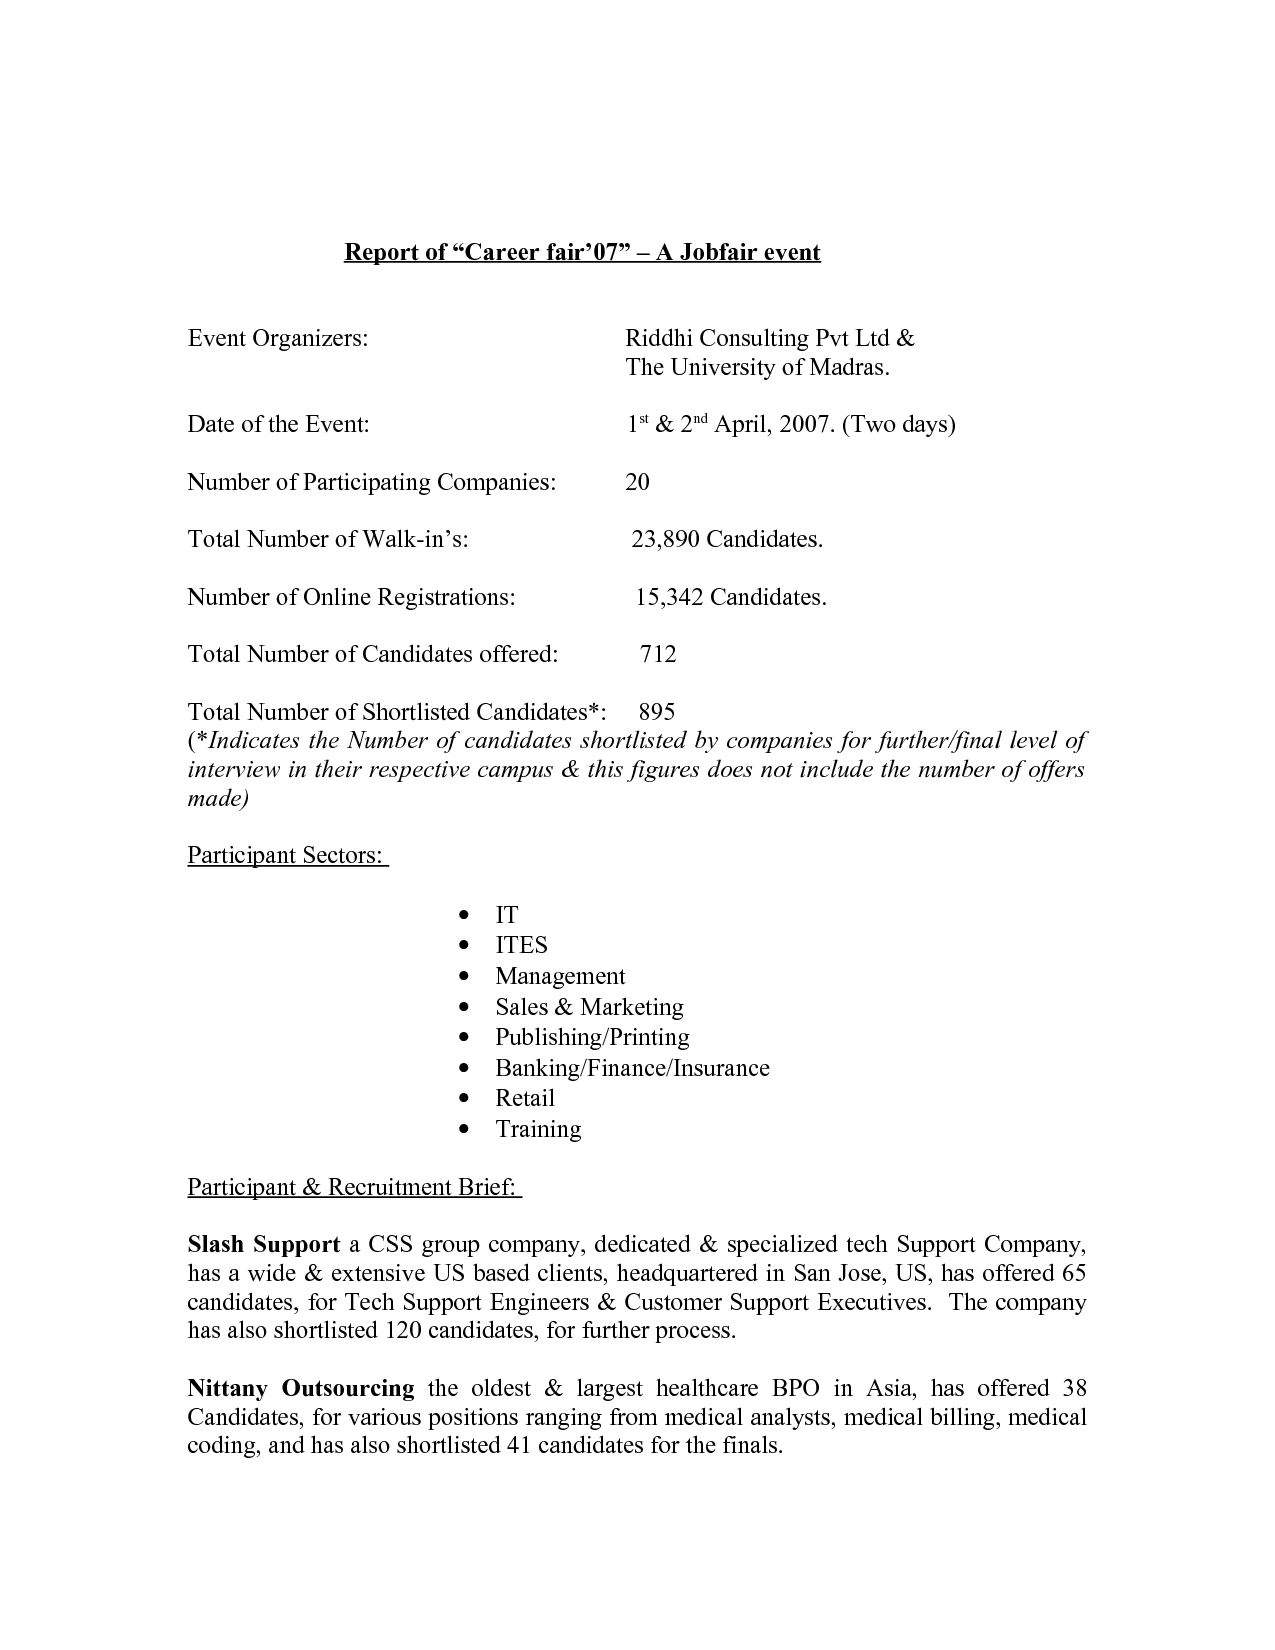 resume format for freshers free download resume format for freshers free download resume format for - Download A Resume For Free